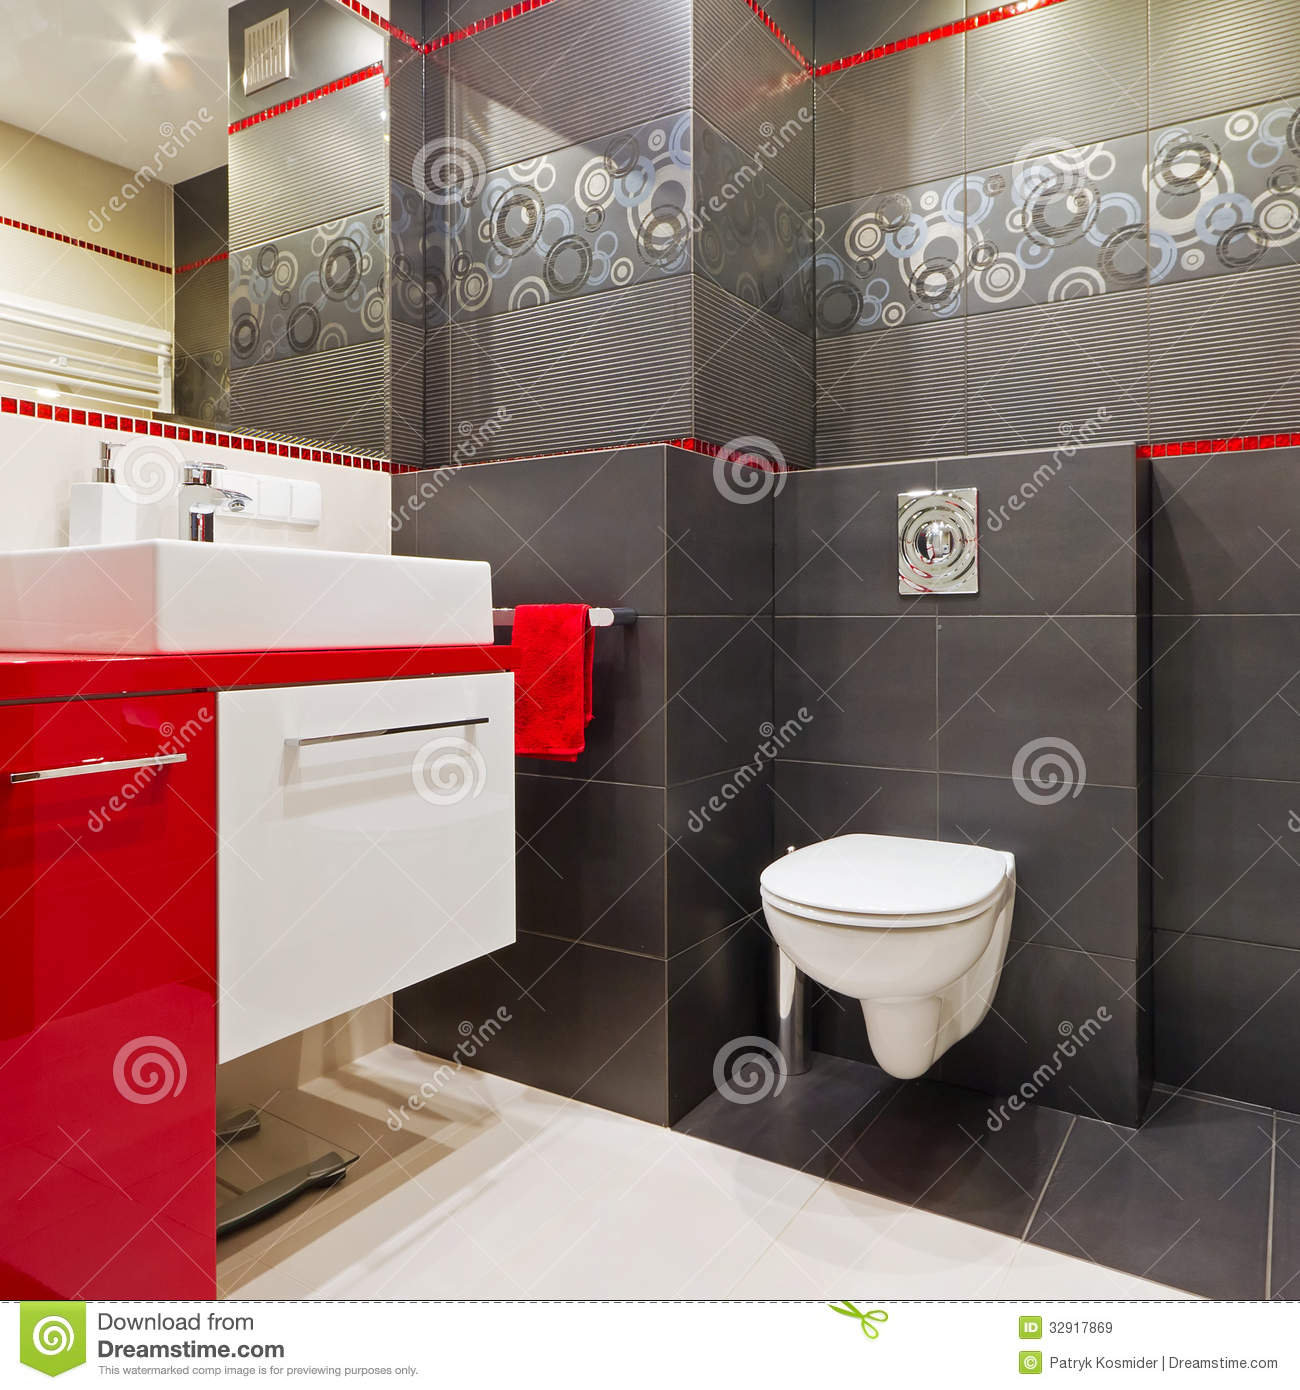 Modern Bathroom Interior Royalty Free Stock Images  Image